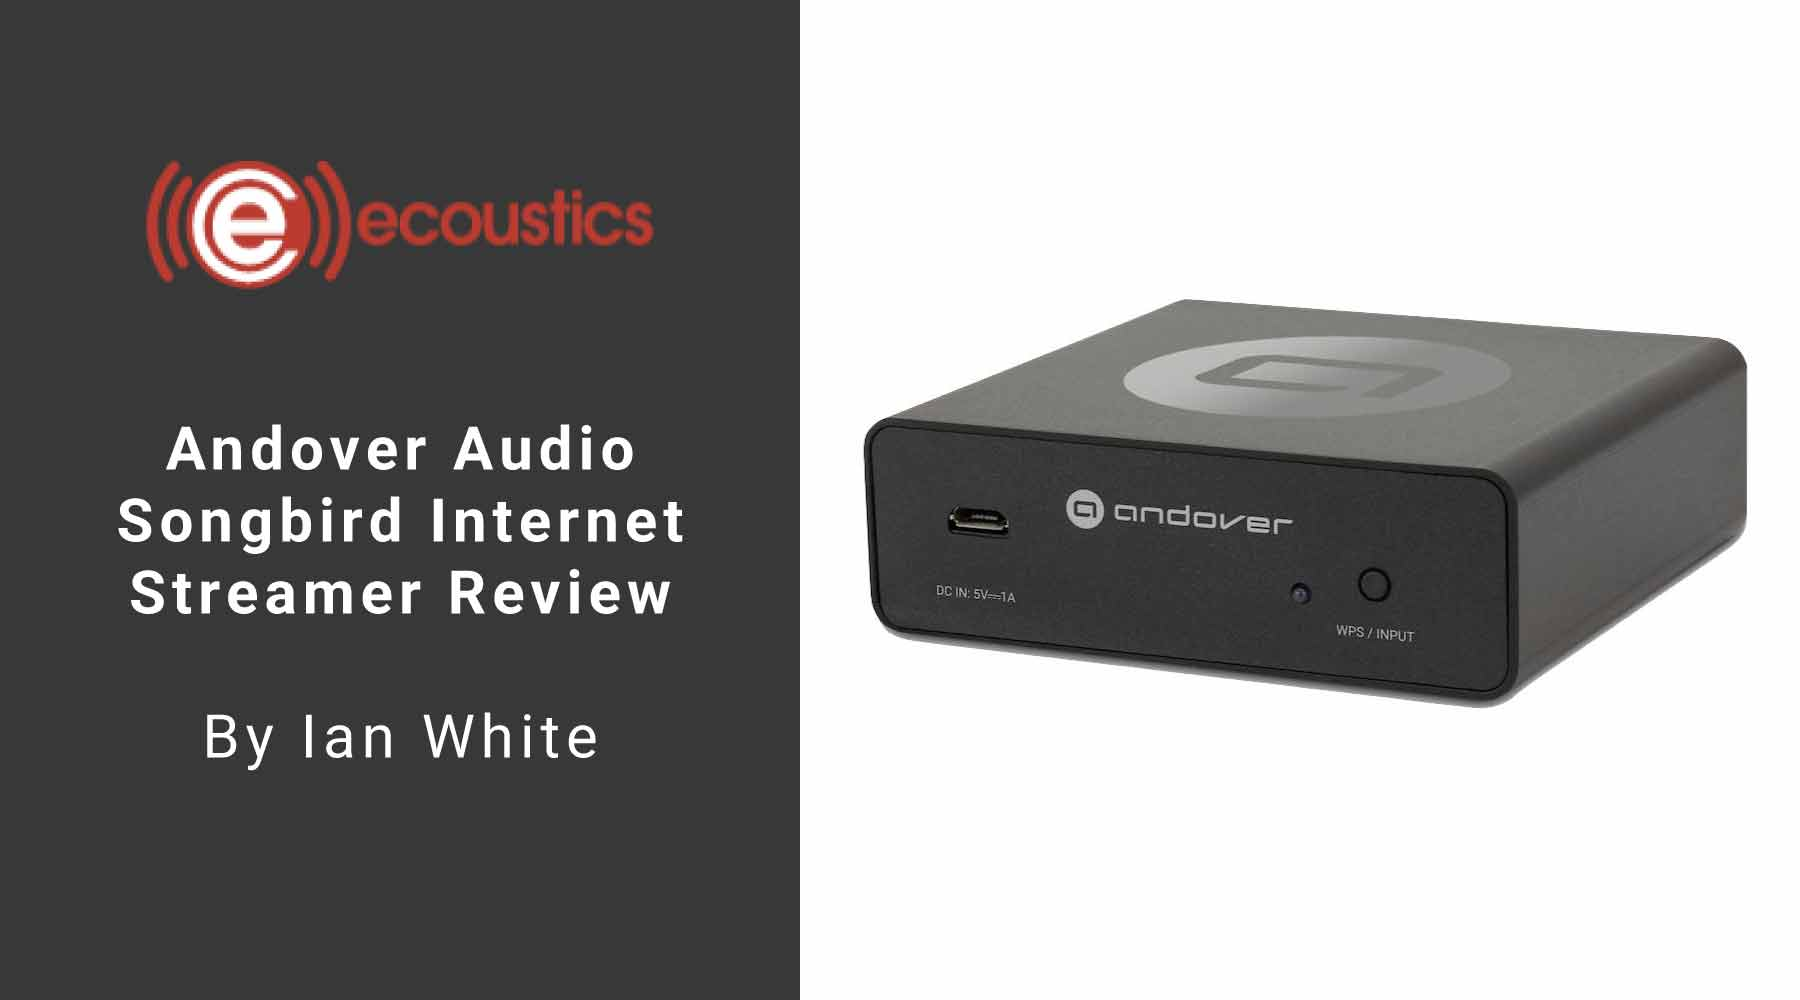 ecoustics songbird internet streamer review